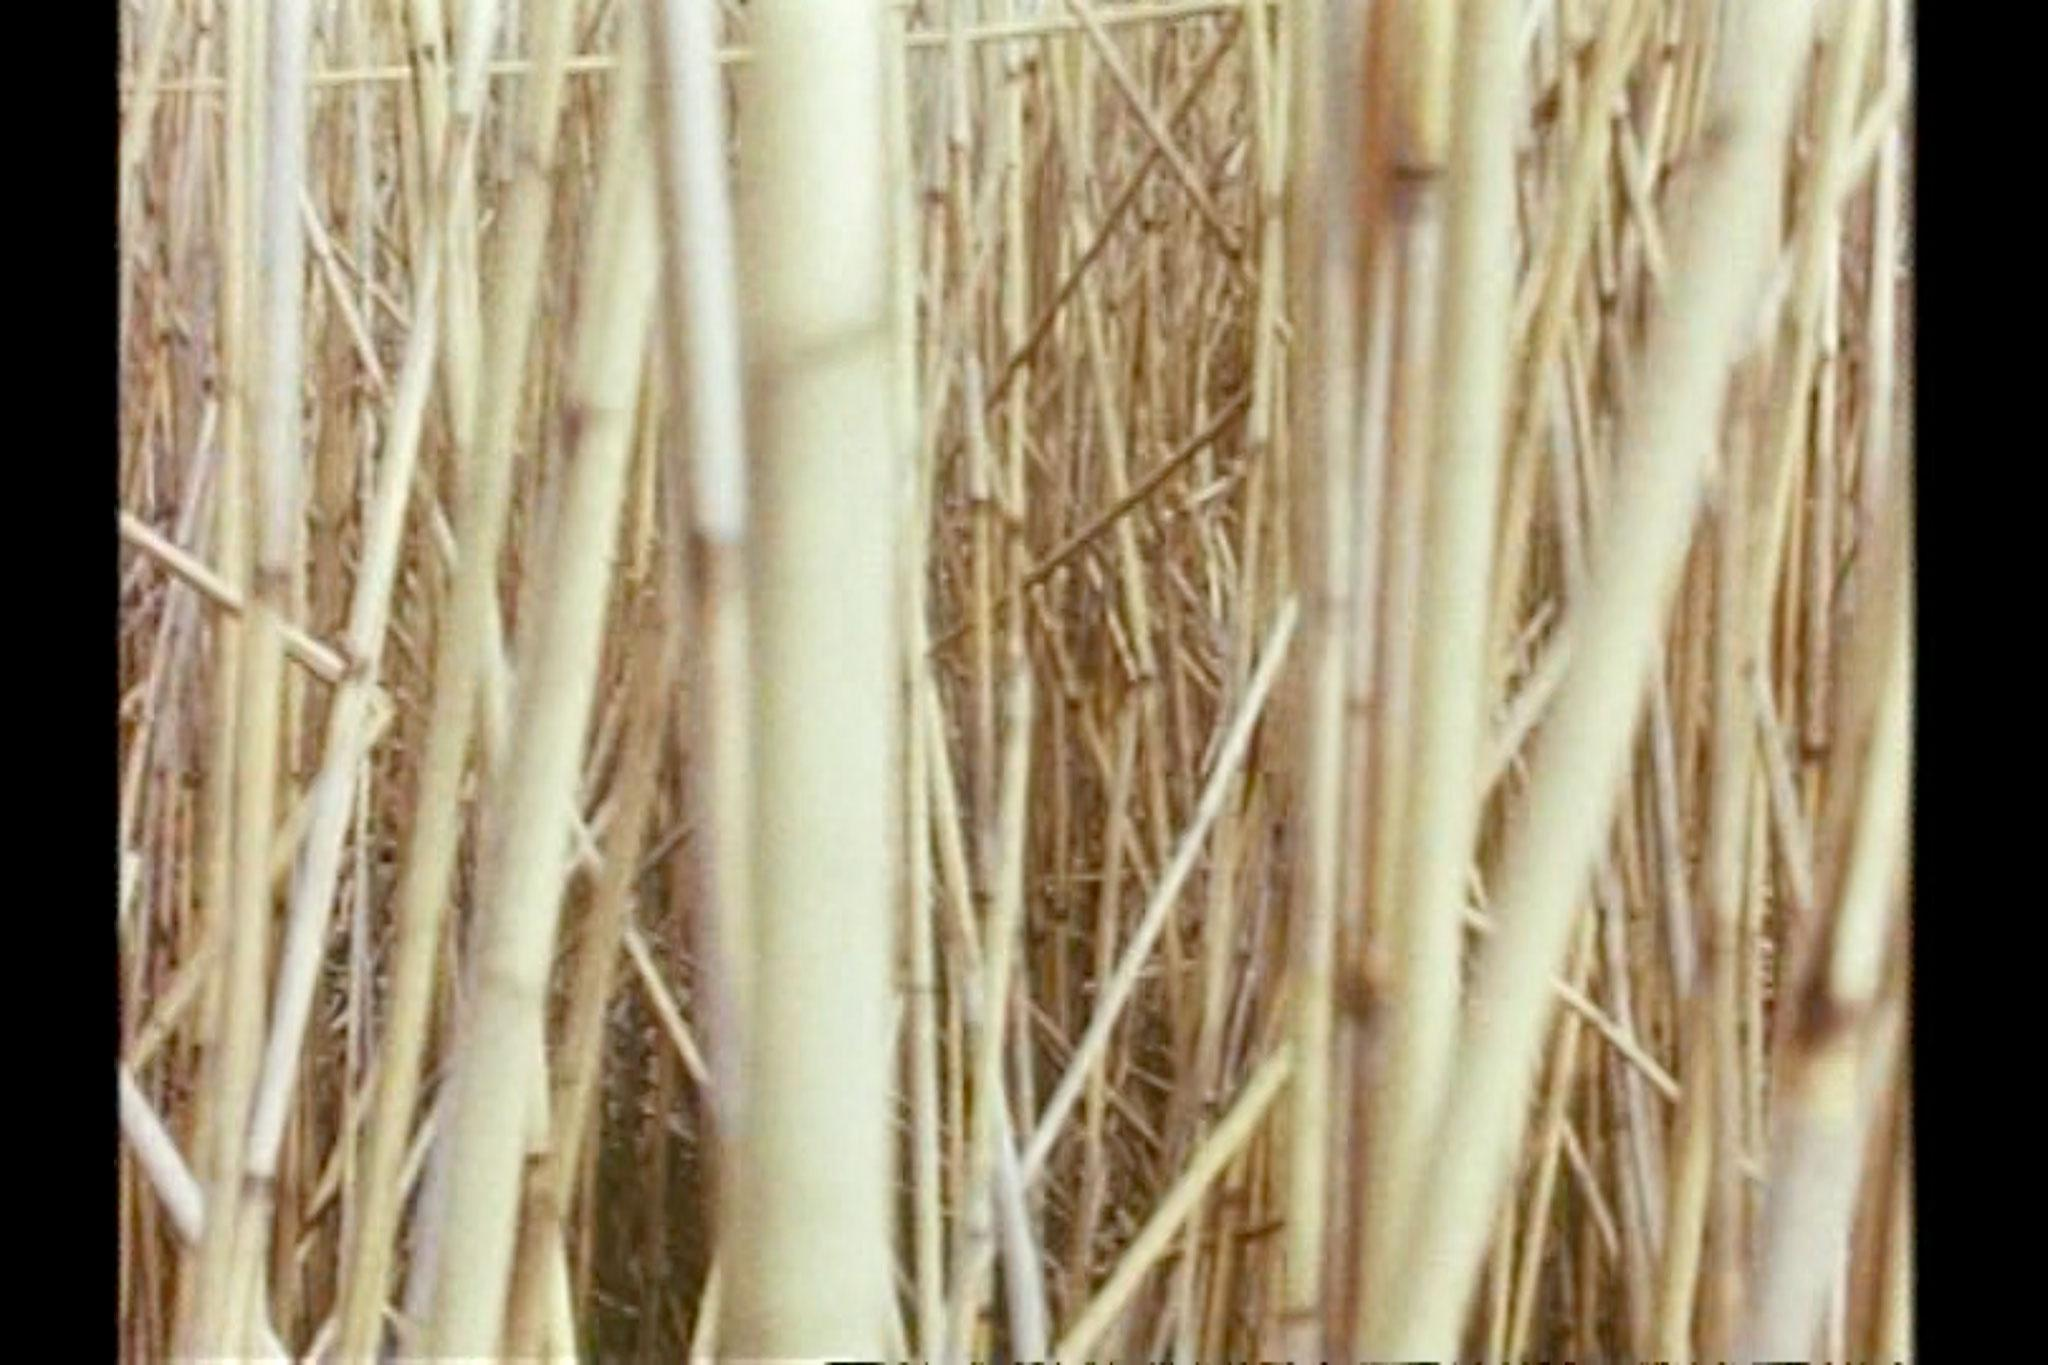 Chaotic image of many criss-crossing reeds.